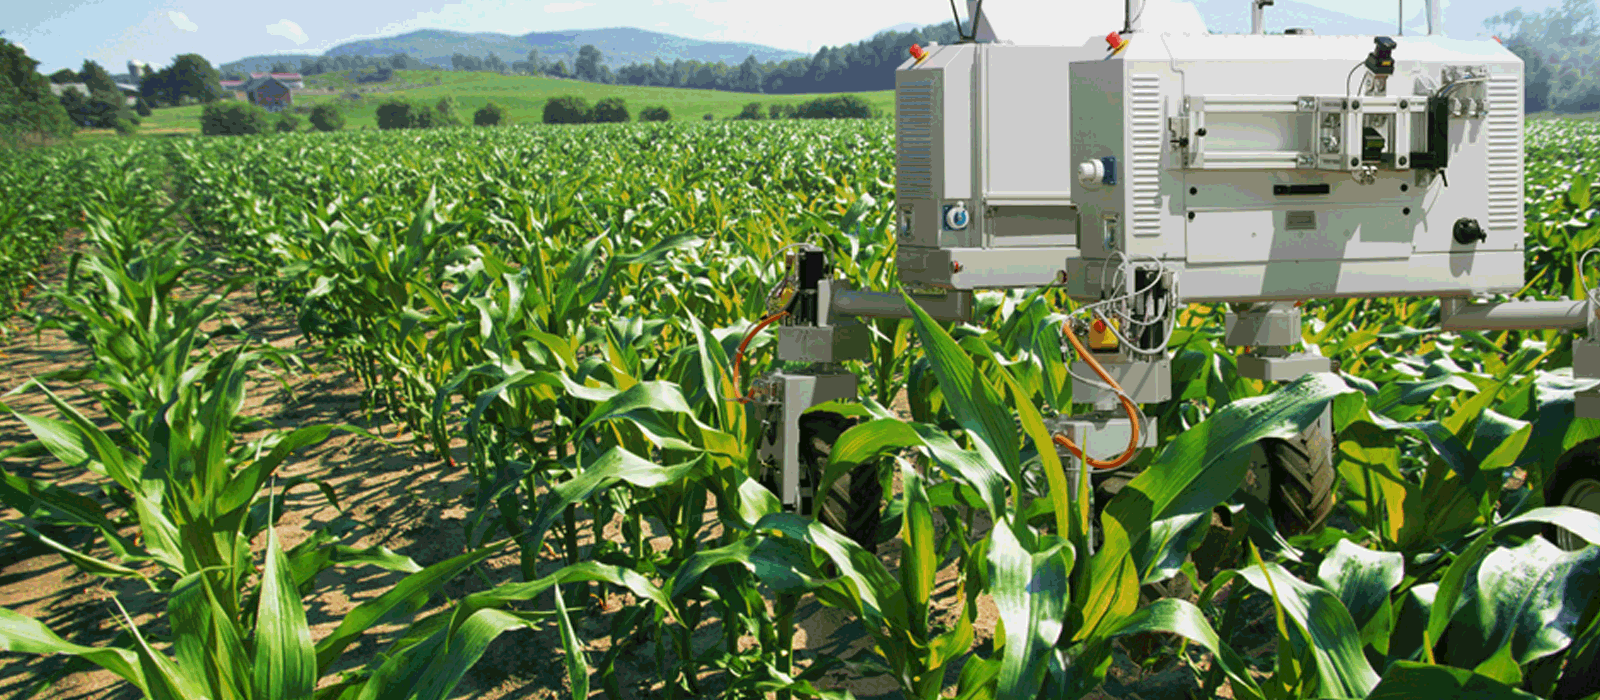 internet of things(iot) in farming and agriculture The internet of things (iot) is poised to become an important element in the world of precision agriculture referred to as agricultural iot, it allows farmers to remotely monitor sensors that keep tabs on everything from soil moisture and crop growth through livestock feed levels, storage conditions, animal behavior and energy consumption.